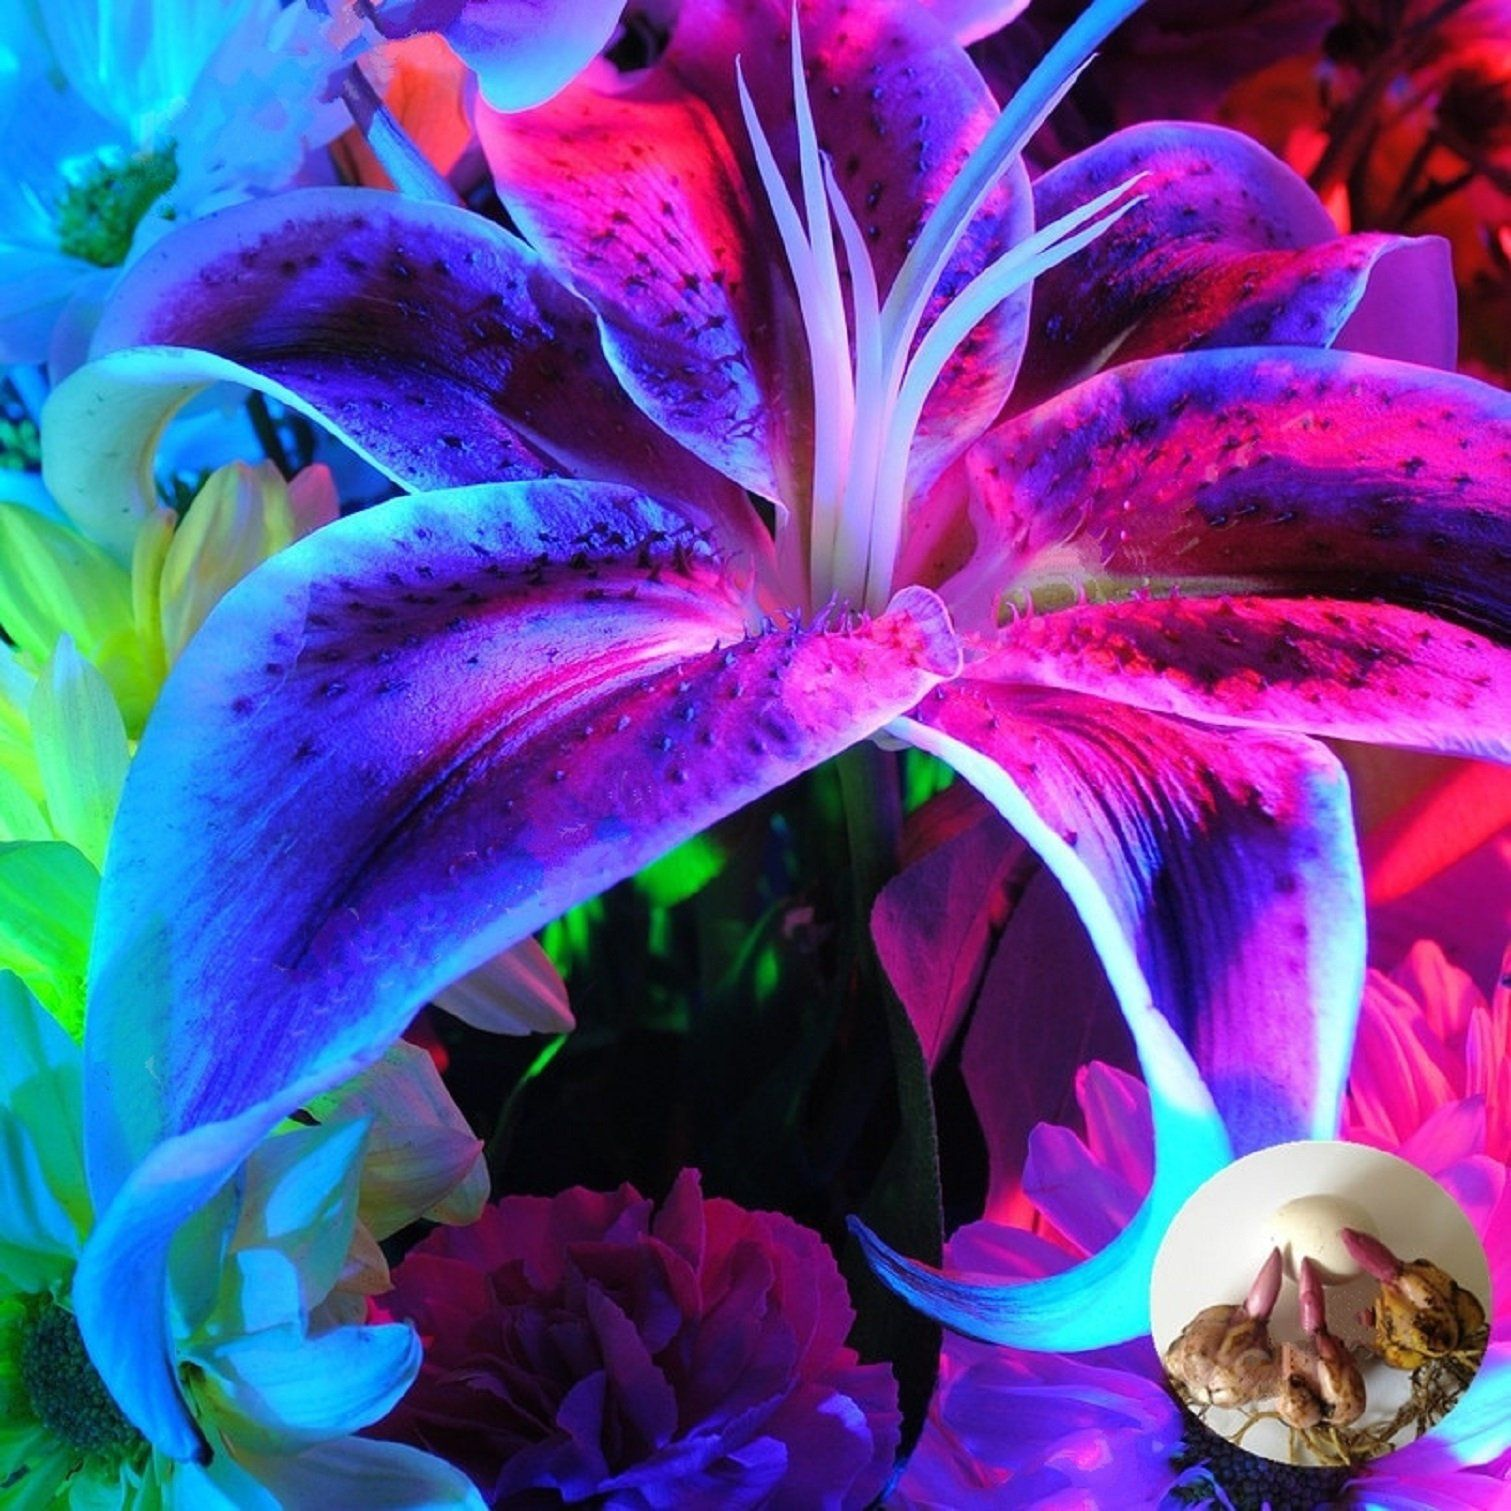 Garland Flame Lilium brownii 40 Pcs Seeds Lily Flower Buy 2 Get 1 Extra Free